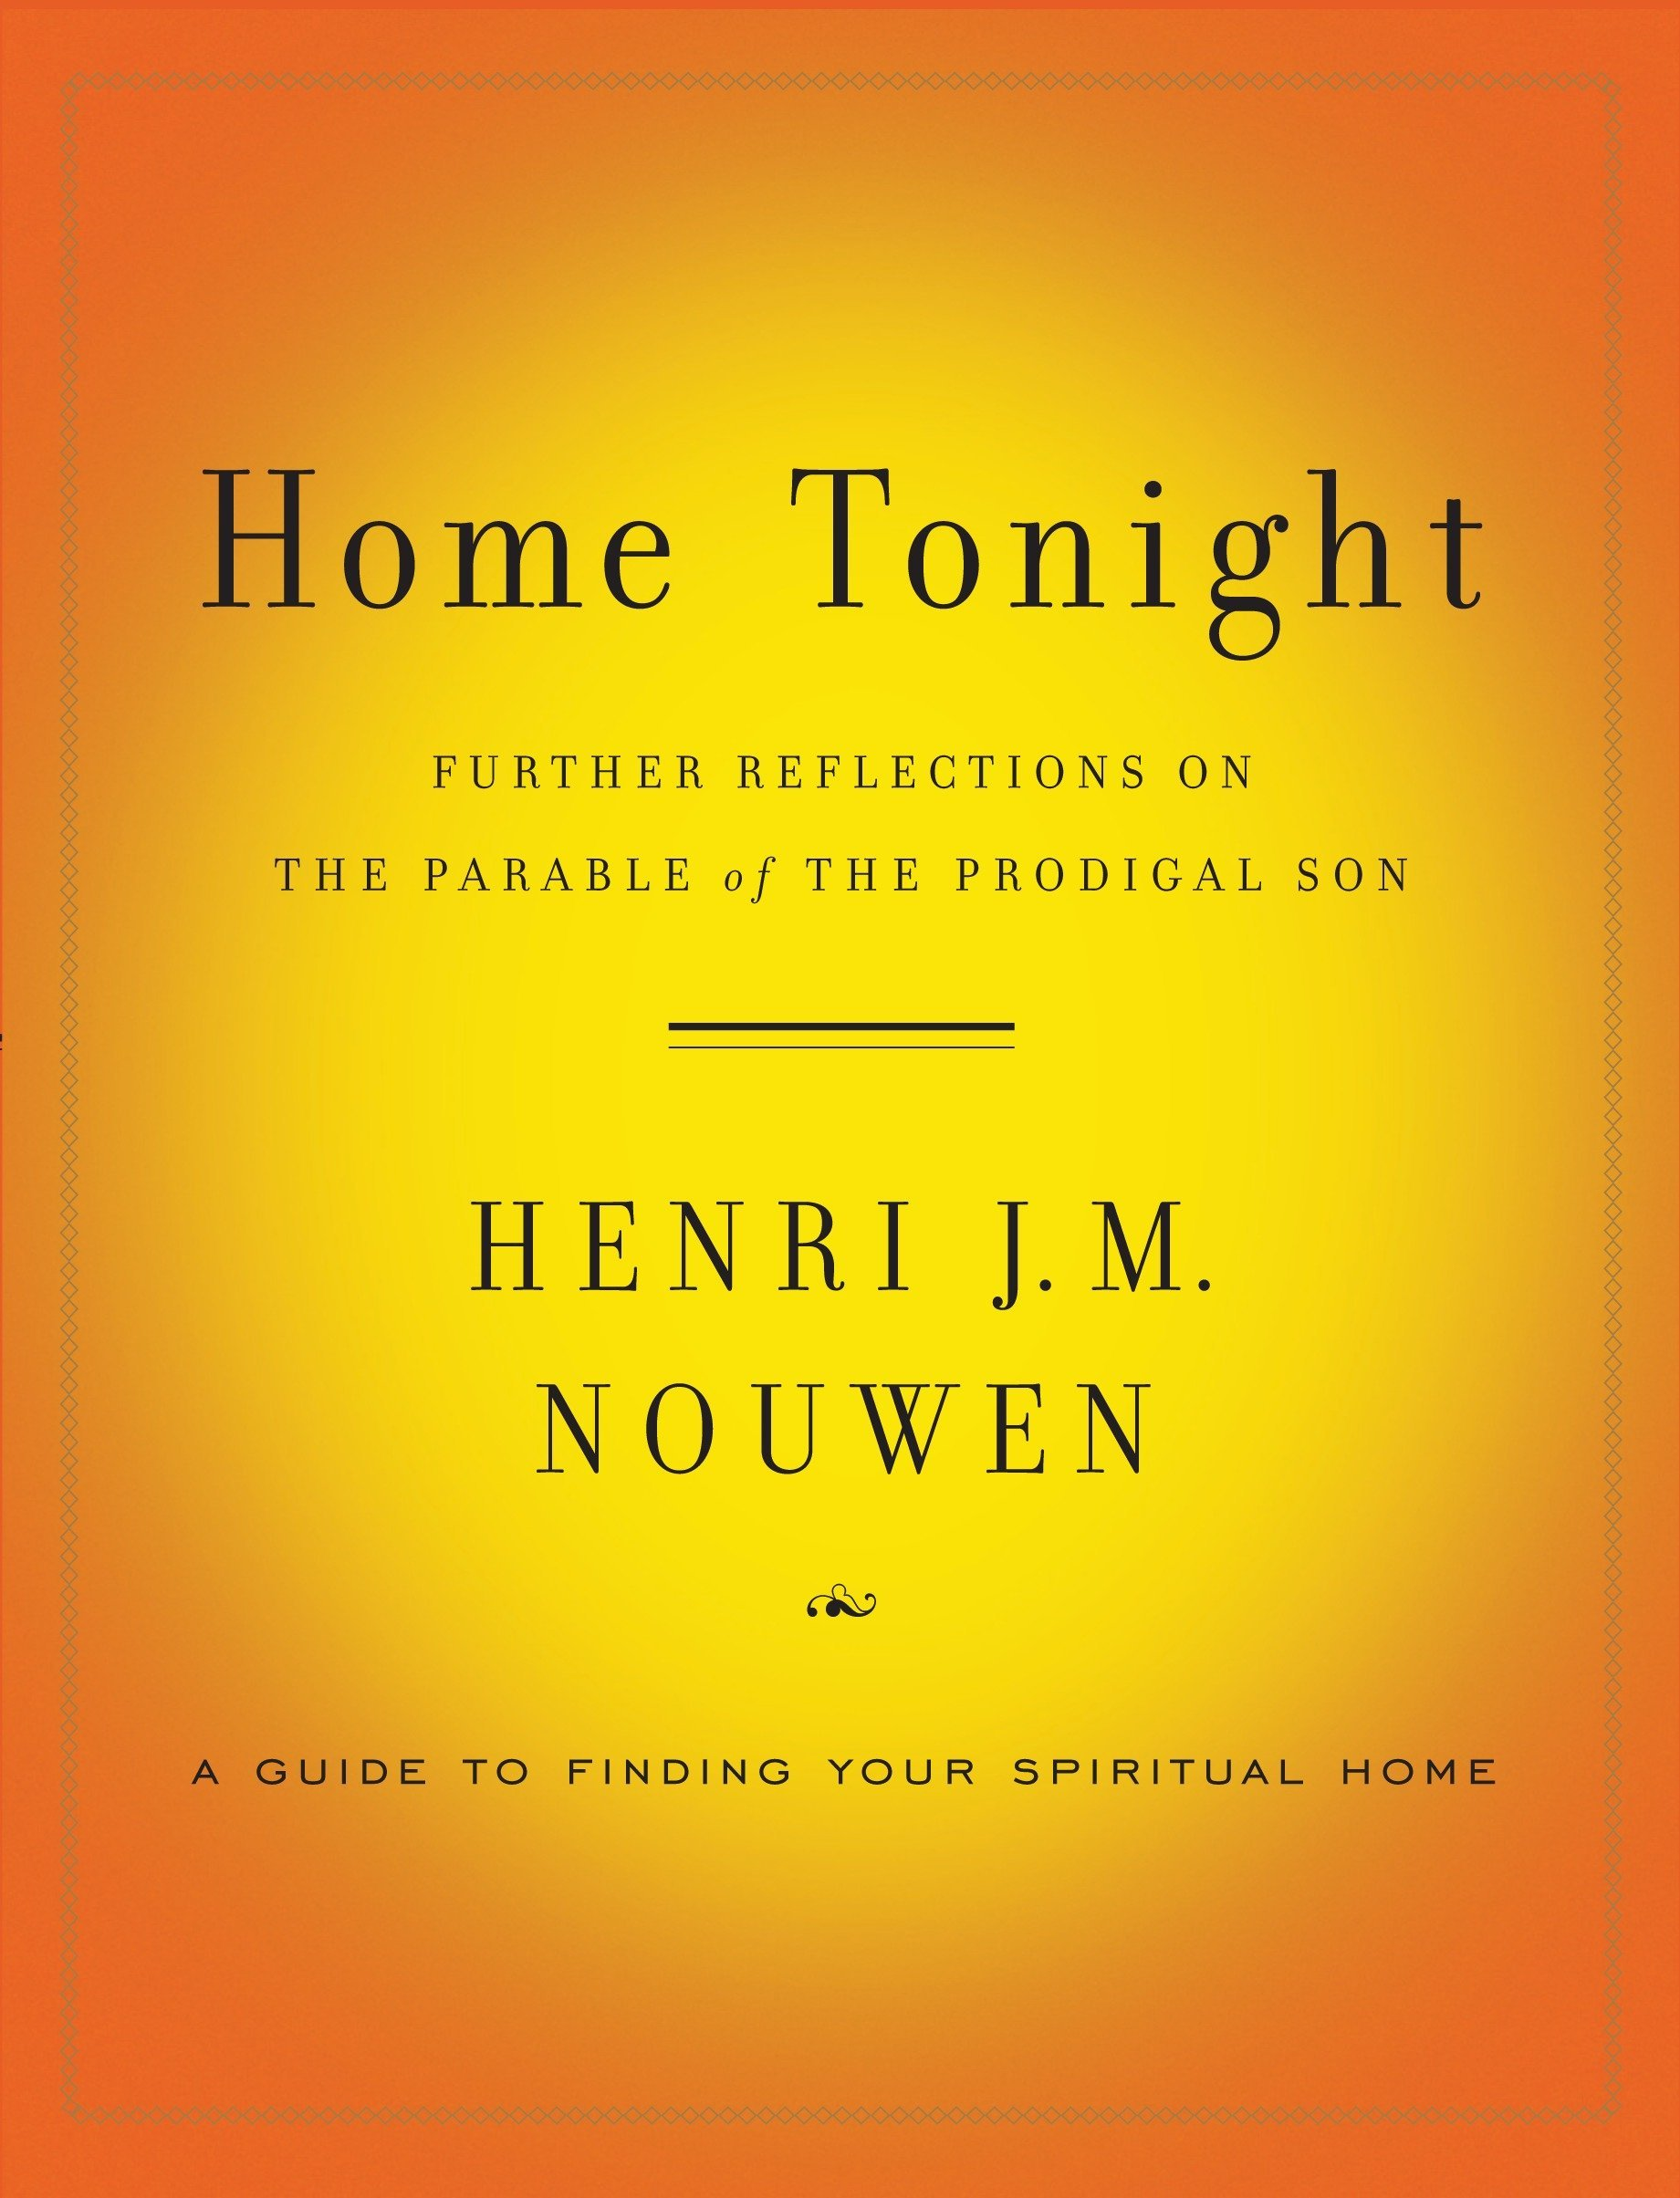 Home Tonight: Further Reflections on the Parable of the Prodigal Son PDF